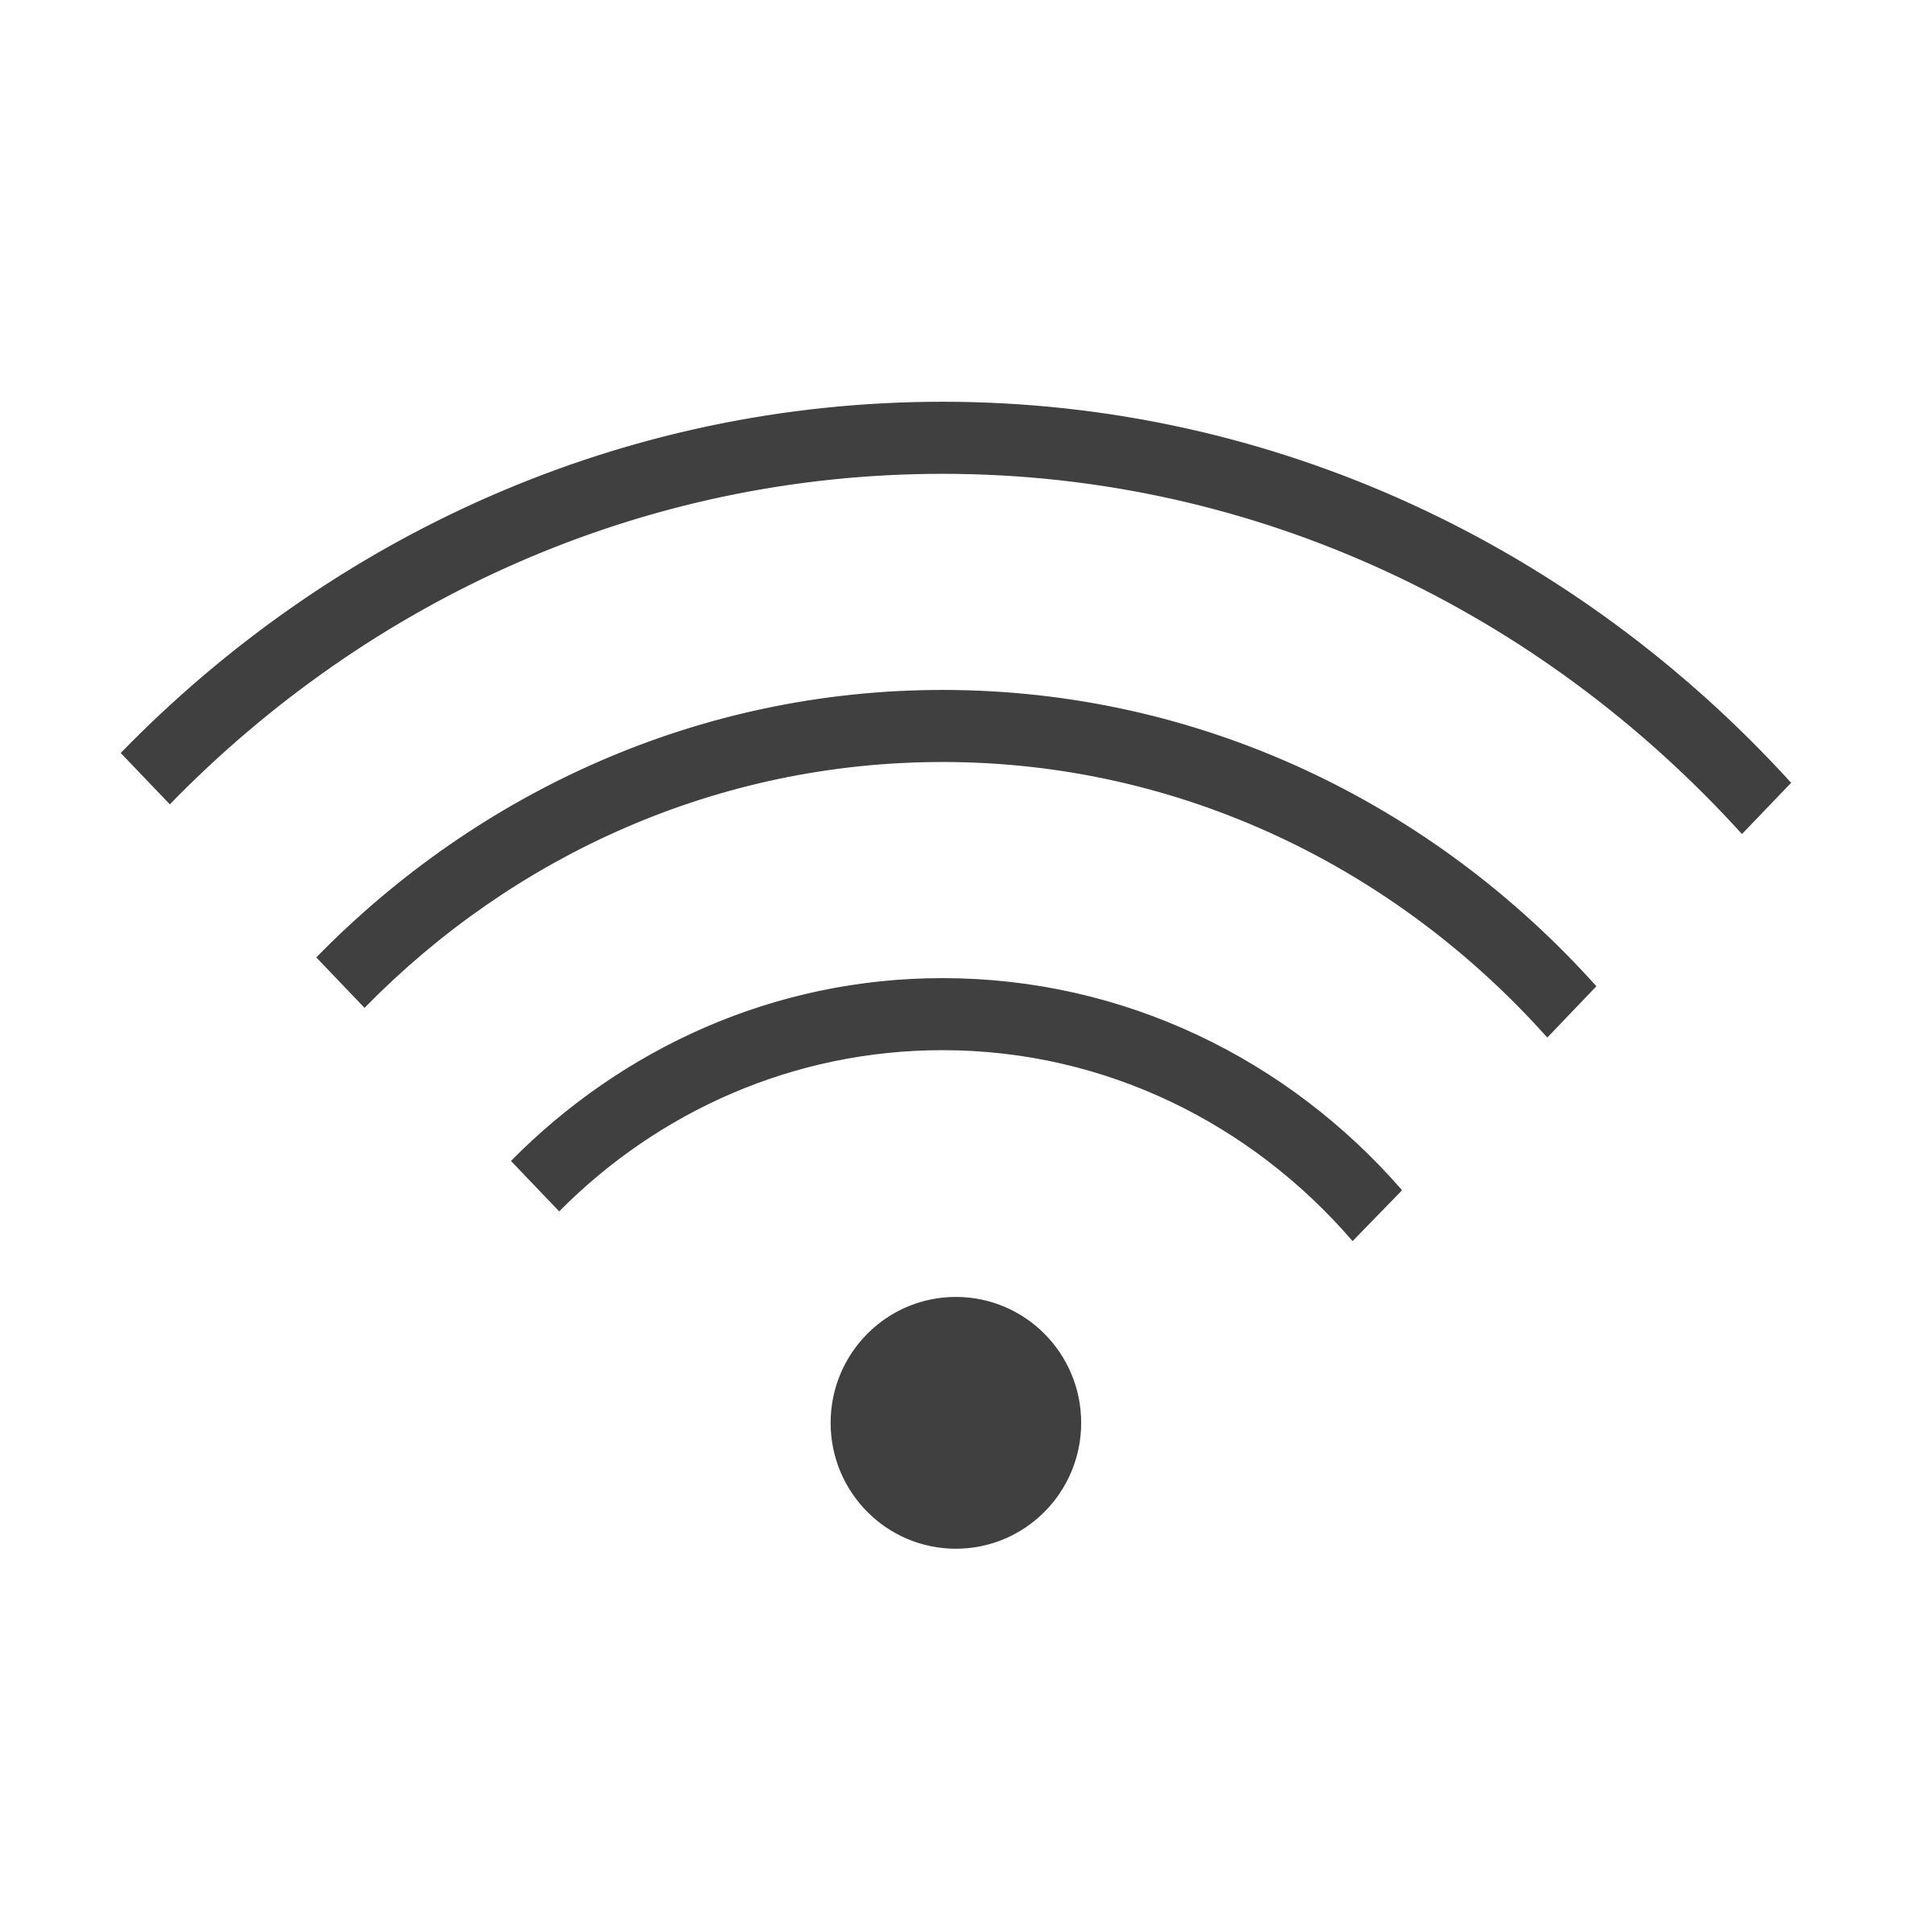 Wifi transparent clipart. Collection of black